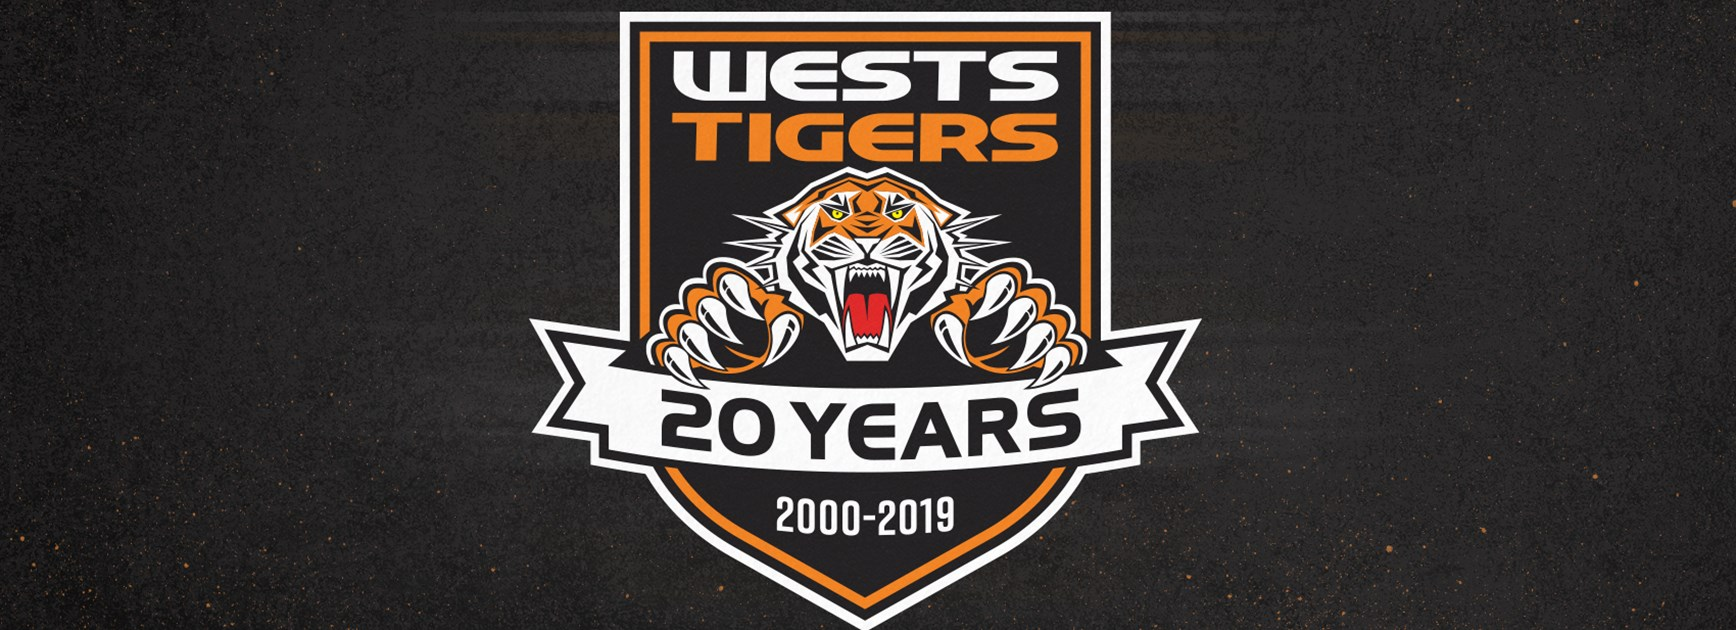 Wests Tigers Statement